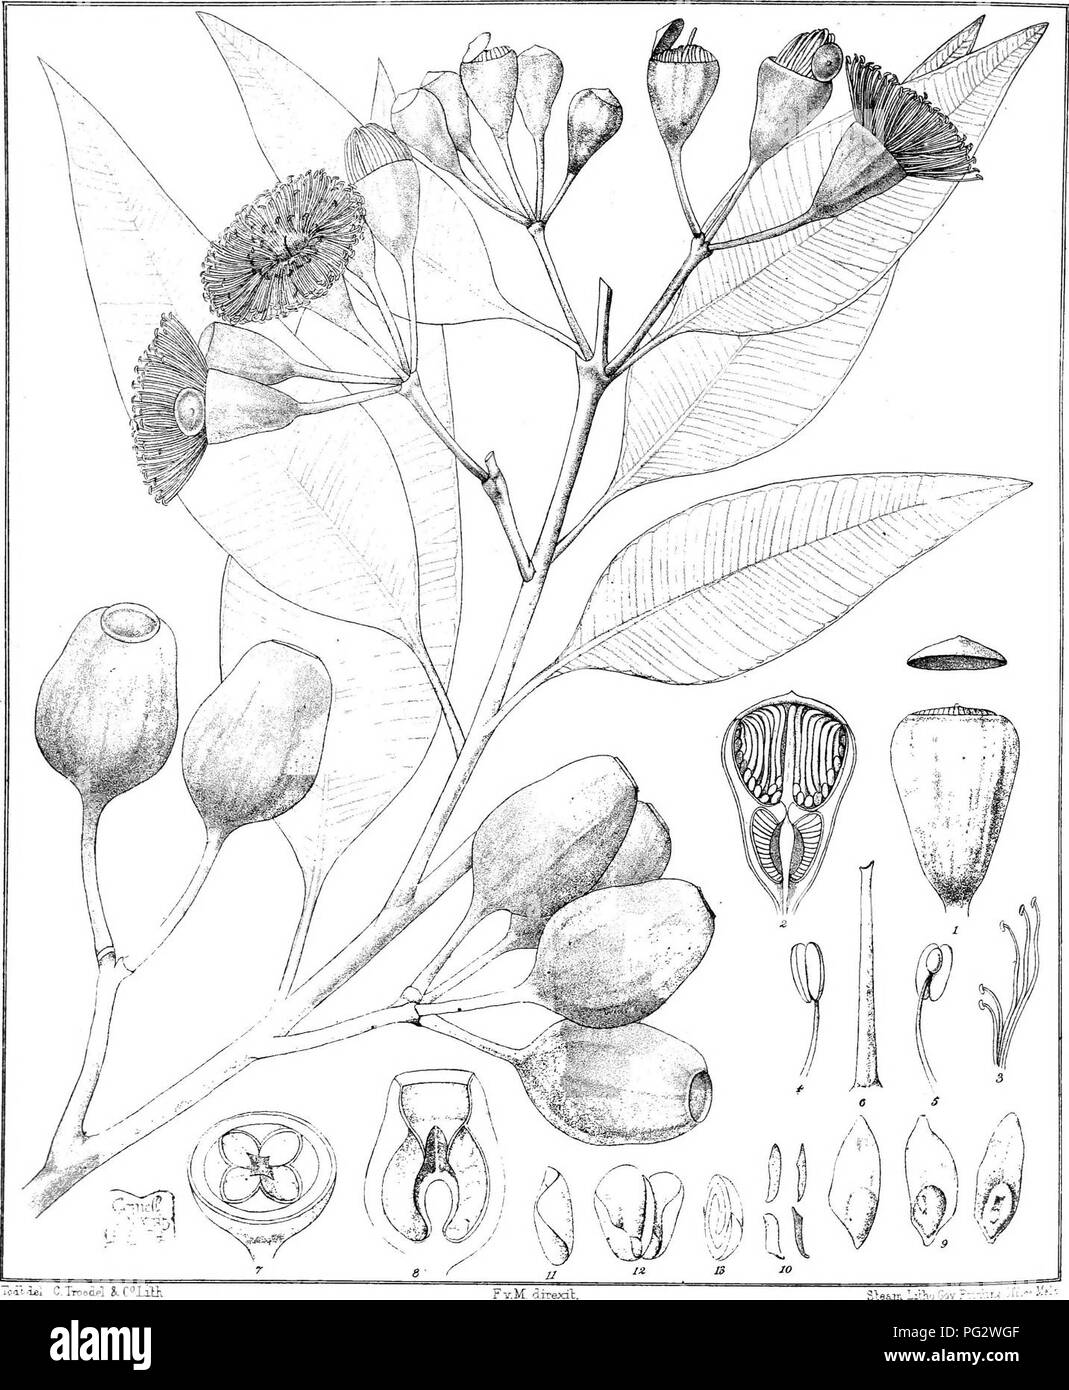 . Eucalyptographia. A descriptive atlas of the eucalypts of Australia and the adjoining islands;. Eucalyptus; Botany. c il .i£l C. Troodi?! k C ^ T.i». Fv.M_ direxib. te&an -itn-j bov ; li(g%]|)ilMg SmiiM^SYM. Please note that these images are extracted from scanned page images that may have been digitally enhanced for readability - coloration and appearance of these illustrations may not perfectly resemble the original work.. Mueller, Ferdinand von, 1825-1896. Melbourne, J. Ferres, Govt. Print; [etc. ,etc. ] - Stock Image